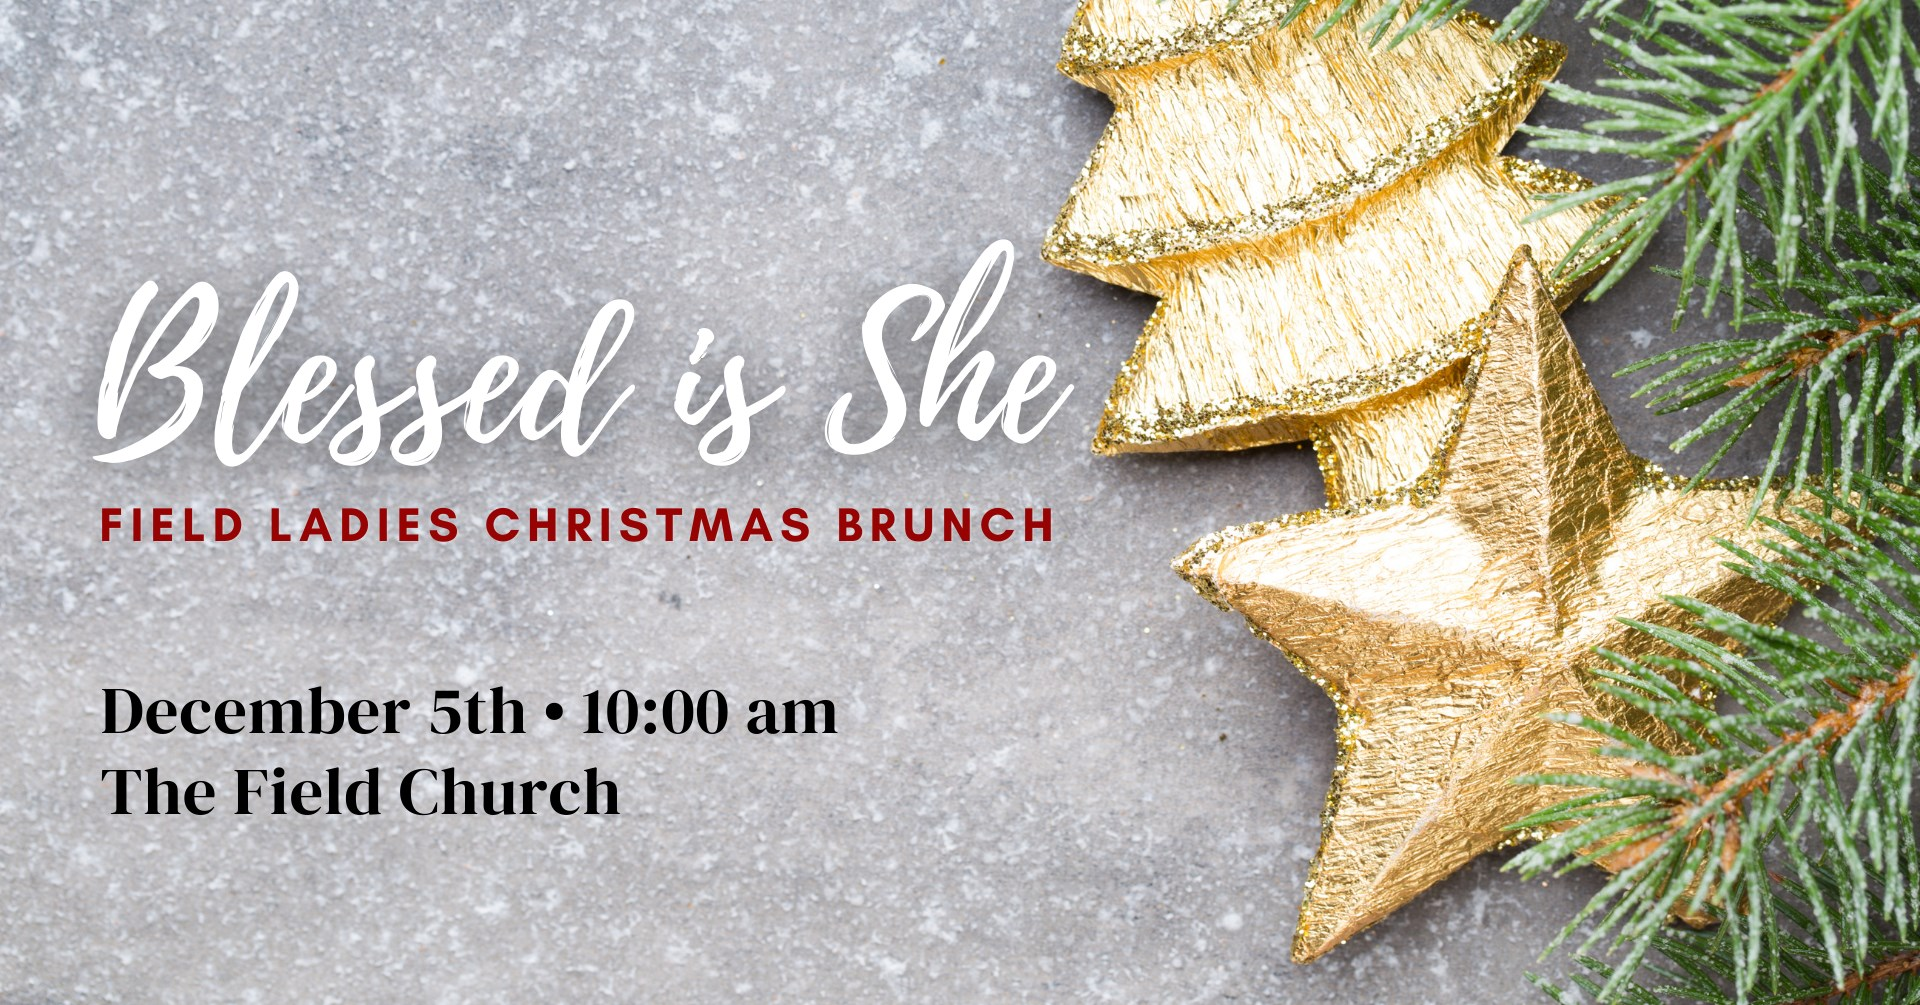 Blessed is She - The Field Ladies Christmas Brunch